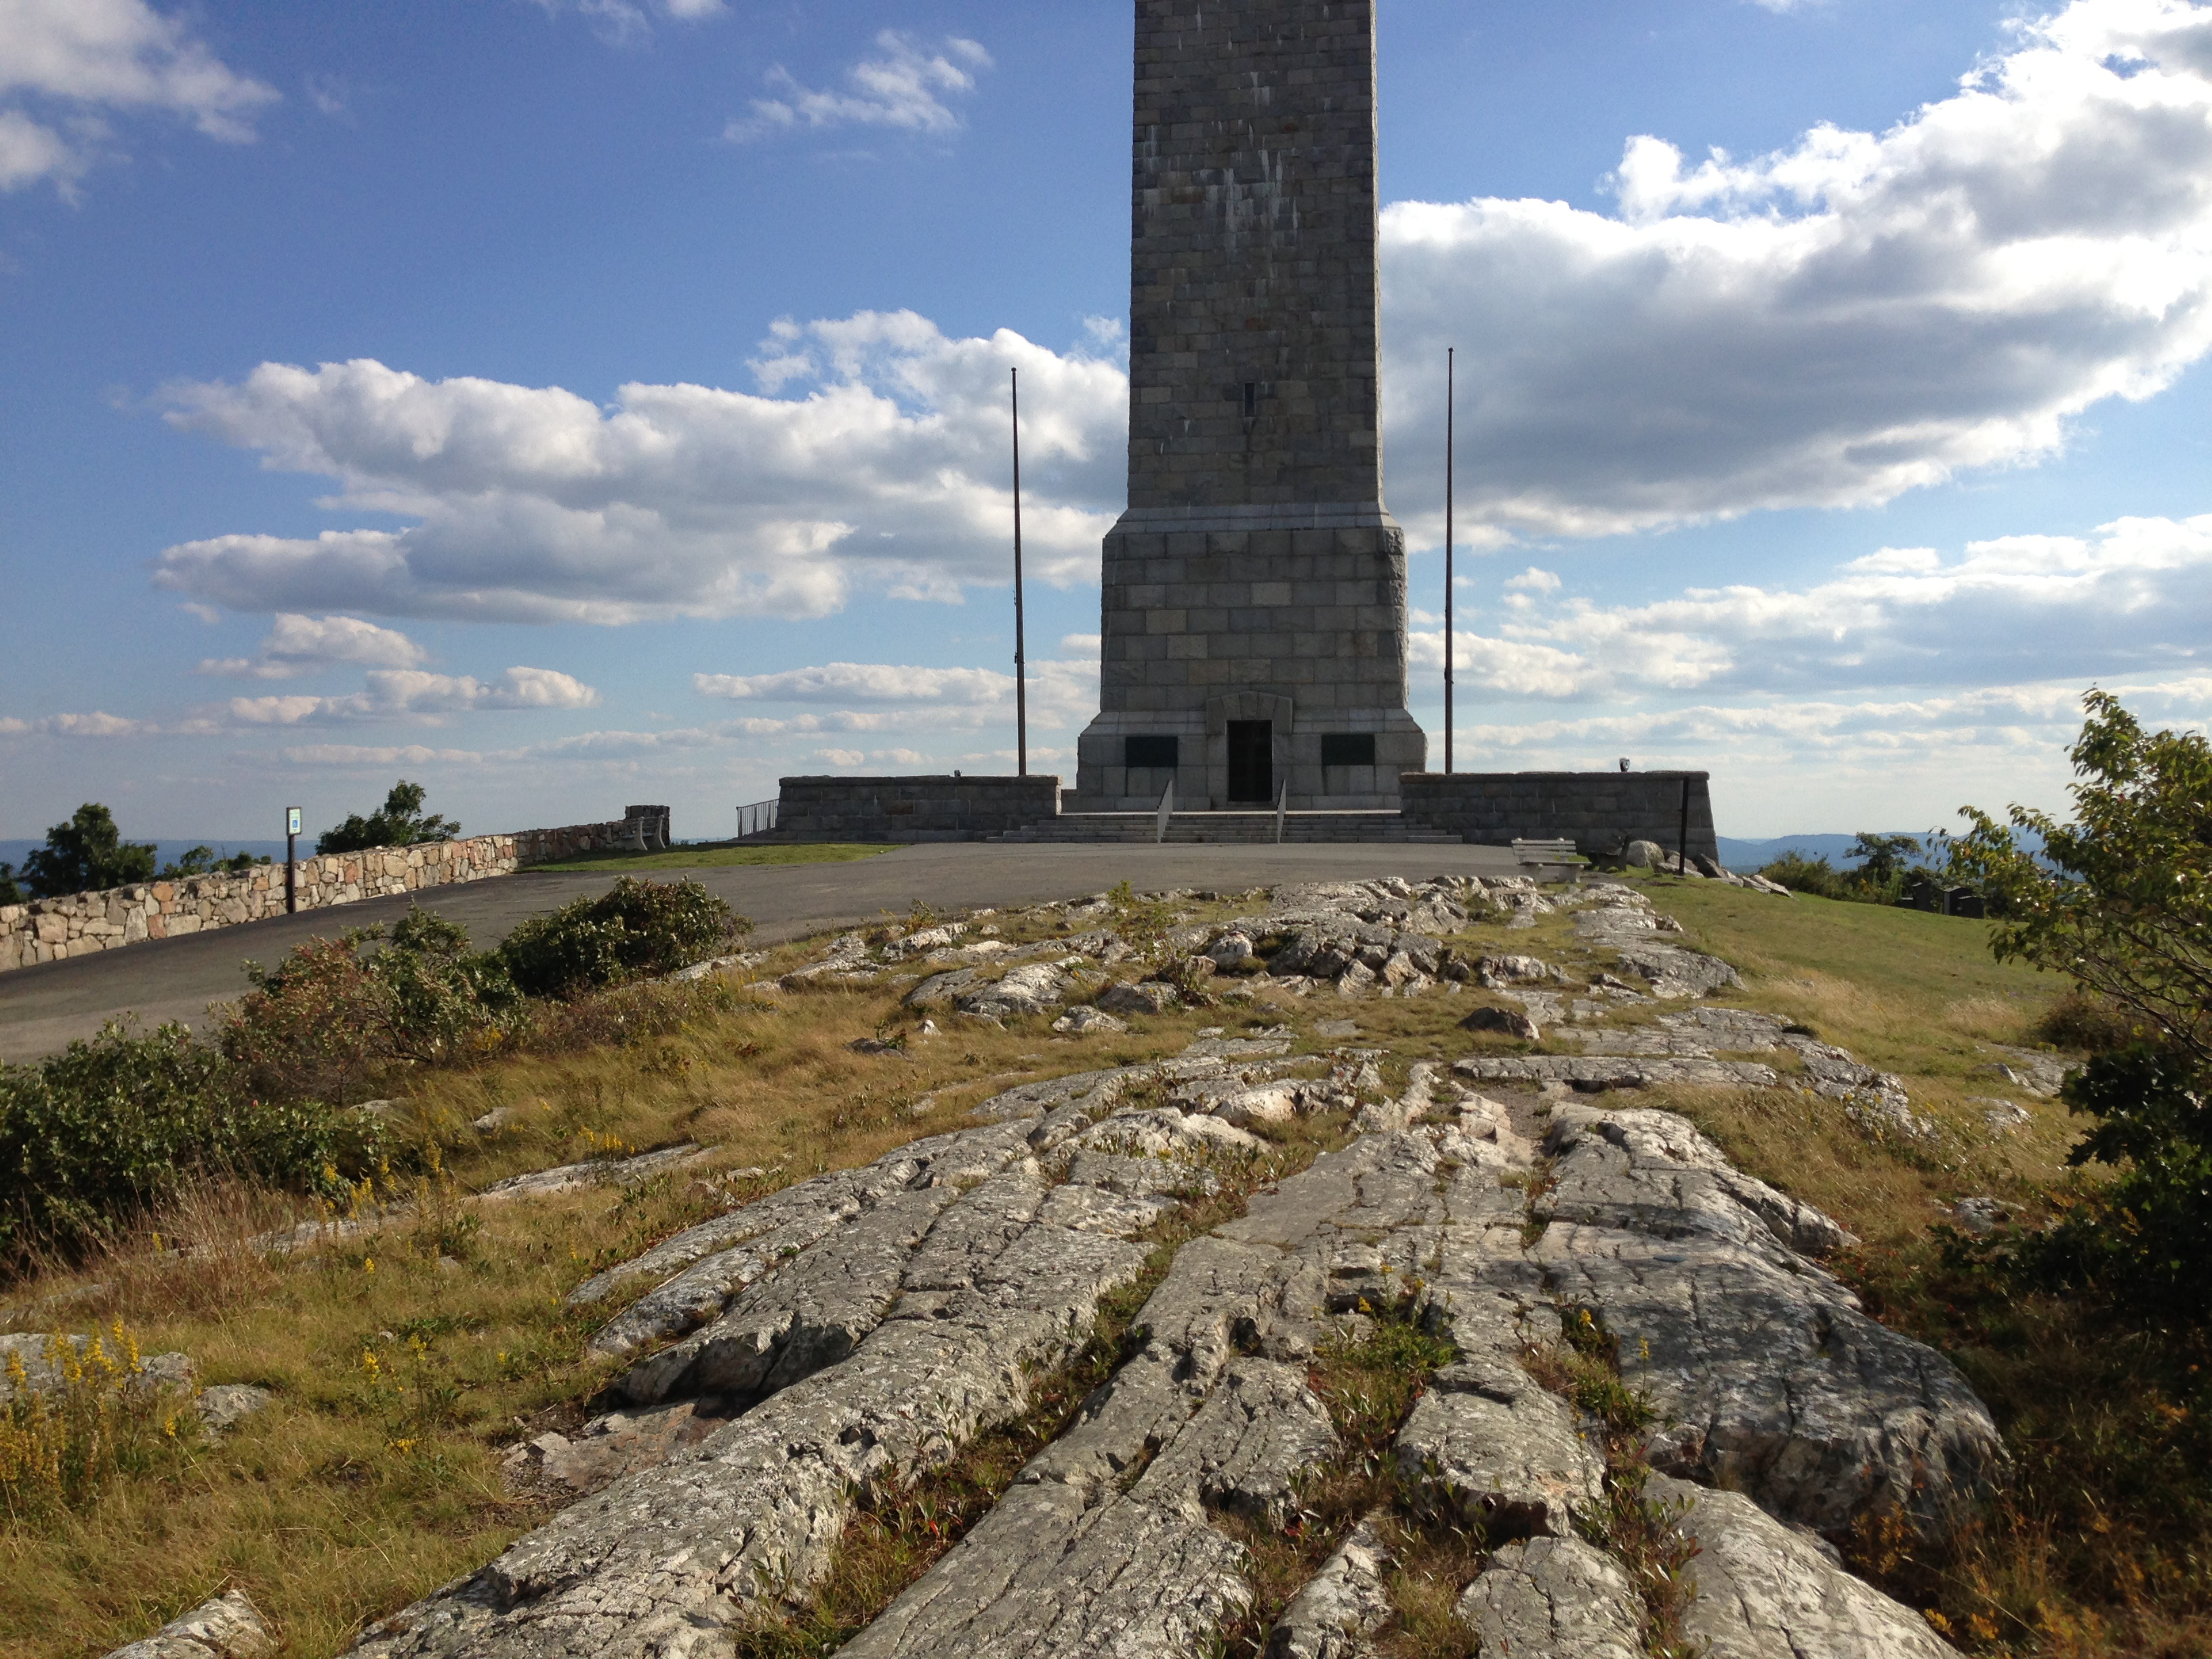 File:2014-08-28 16 53 51 View of the base of High Point Monument from the northeast in High ...